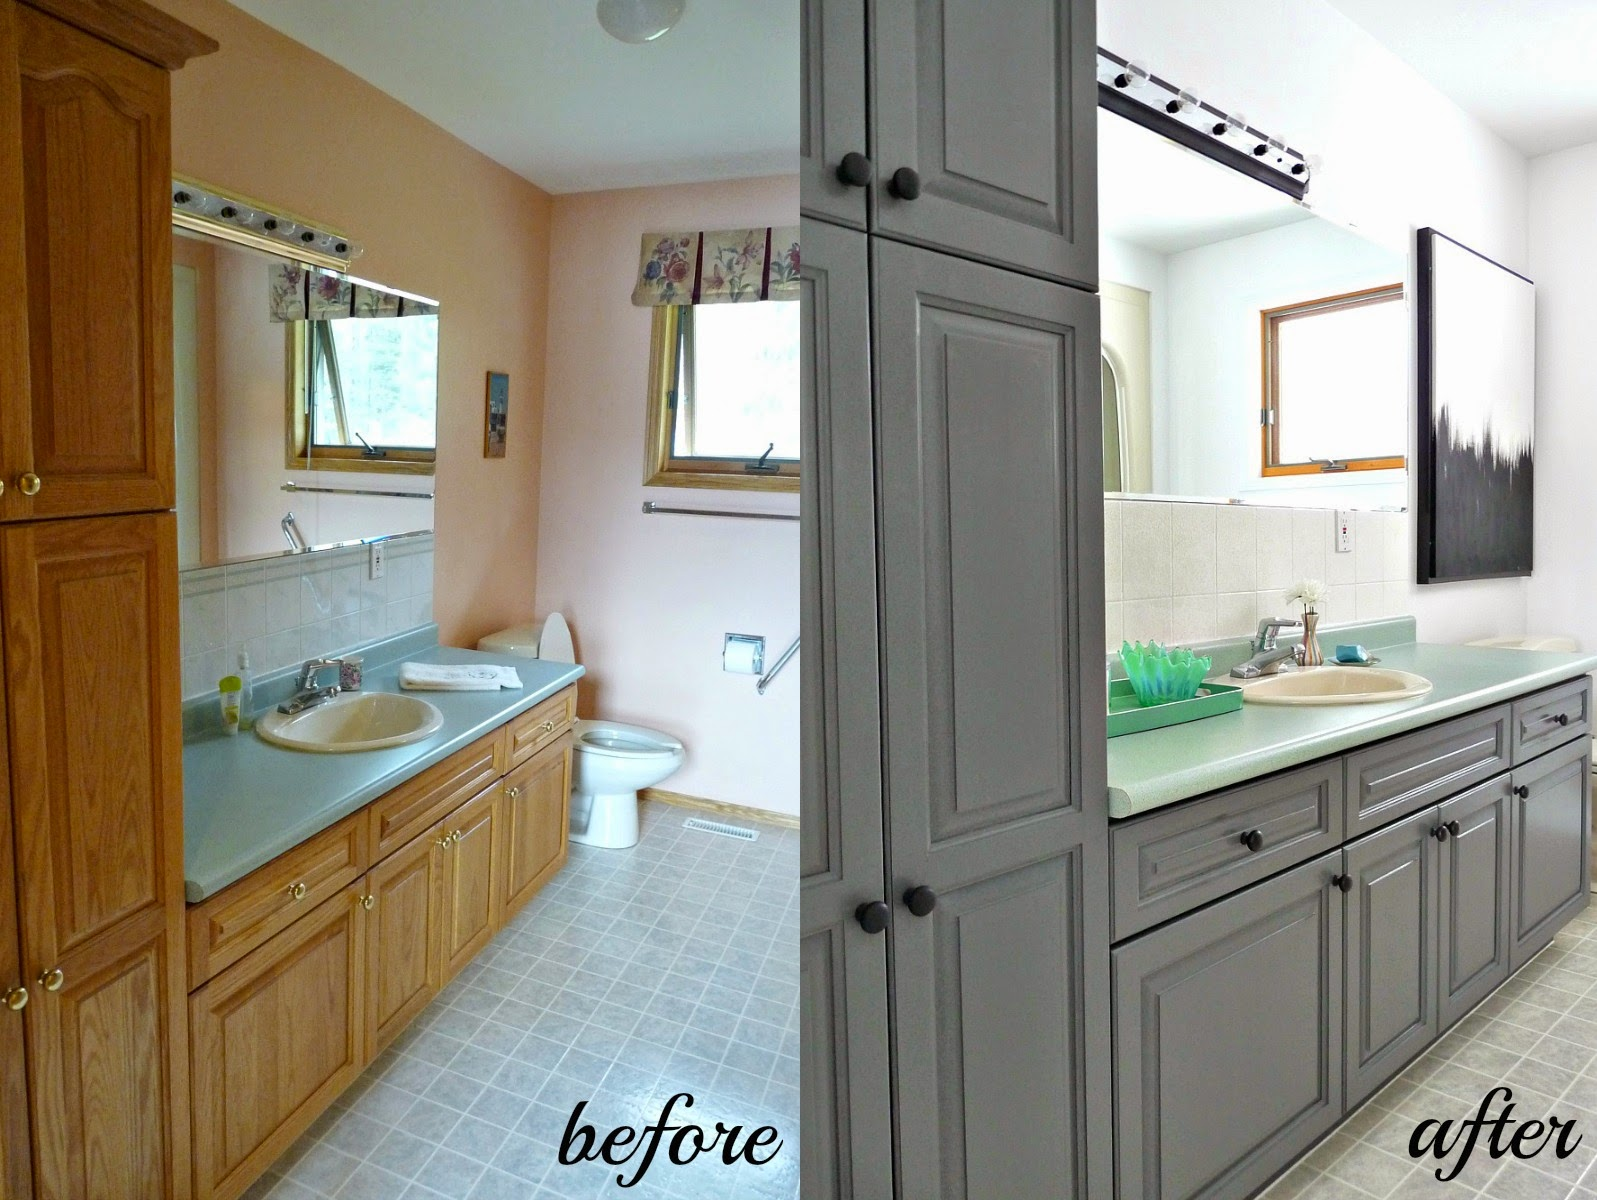 Best Kitchen Gallery: Cabi Refinishing 101 Latex Paint Vs Stain Vs Rust Oleum of Kitchen Cabinet Paint Rustoleum on rachelxblog.com